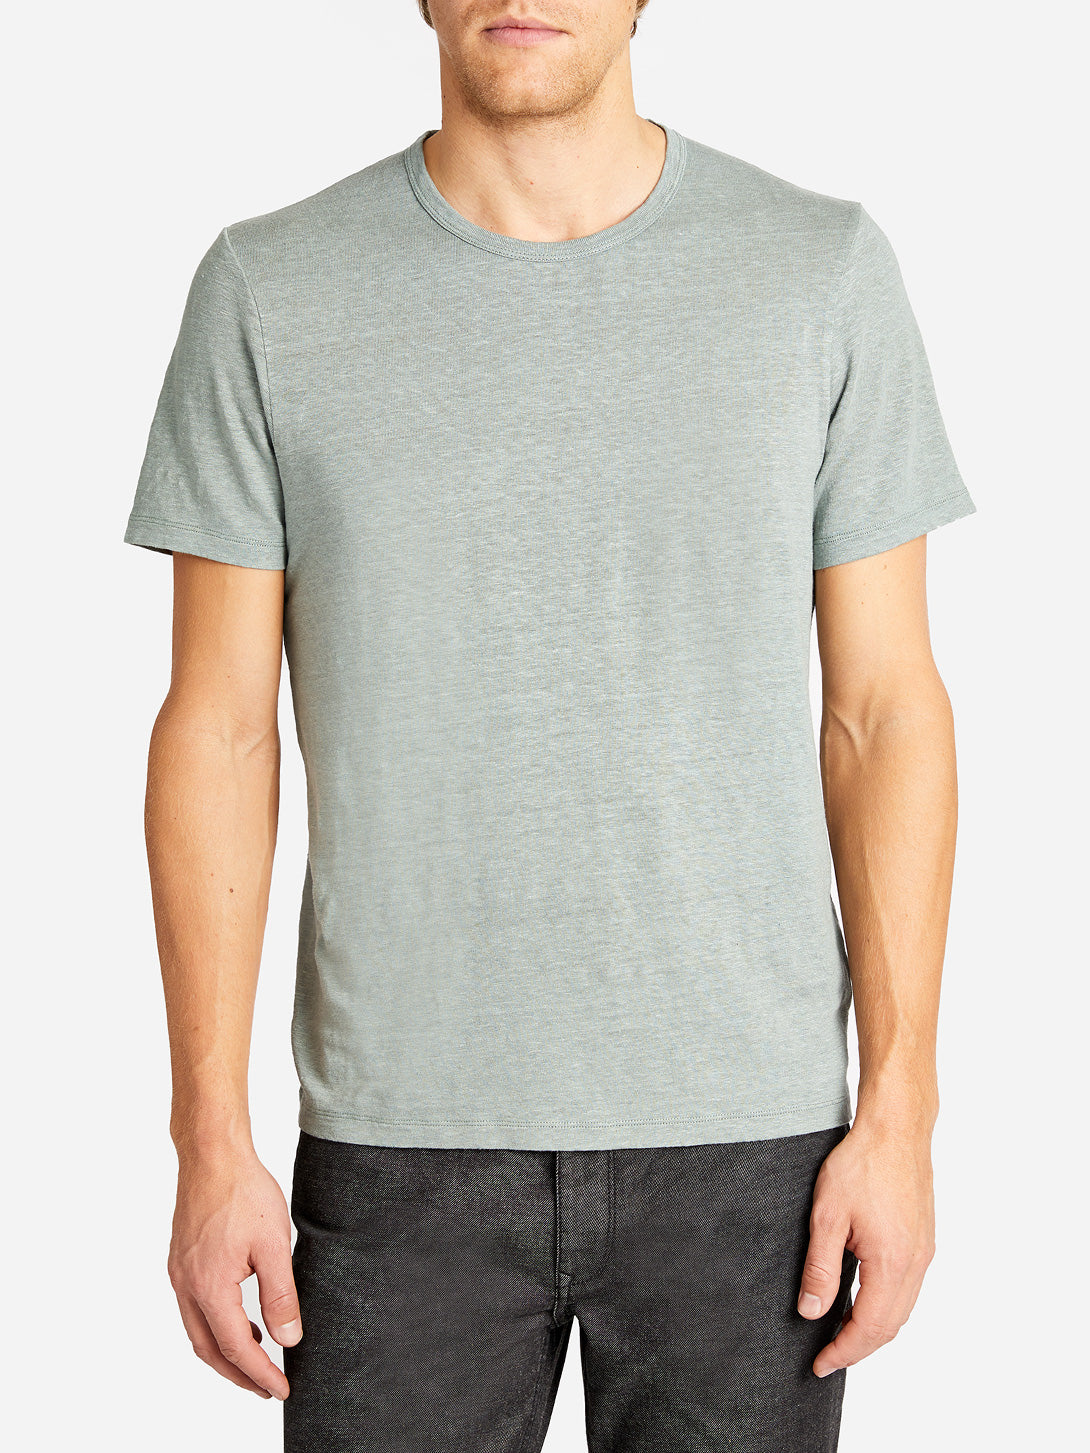 CREW NECK TEE SHIRT SAGE ONS CLOTHING